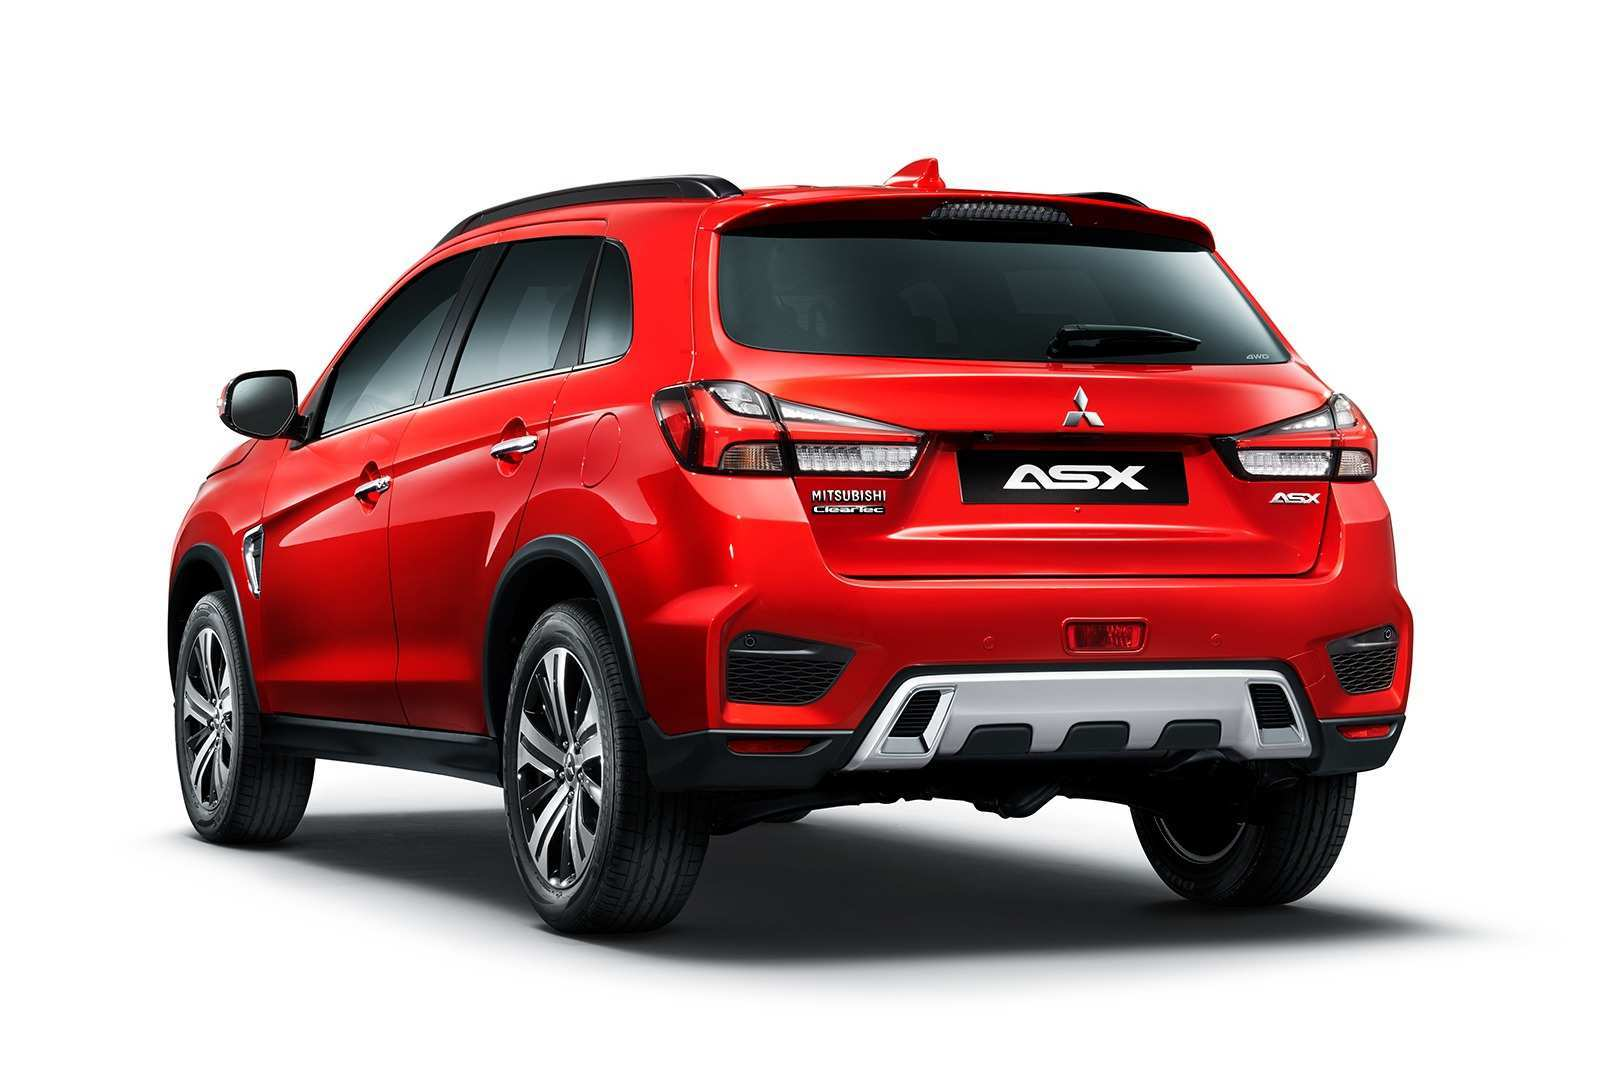 82 The Best Mitsubishi Outlander Gt 2020 Picture